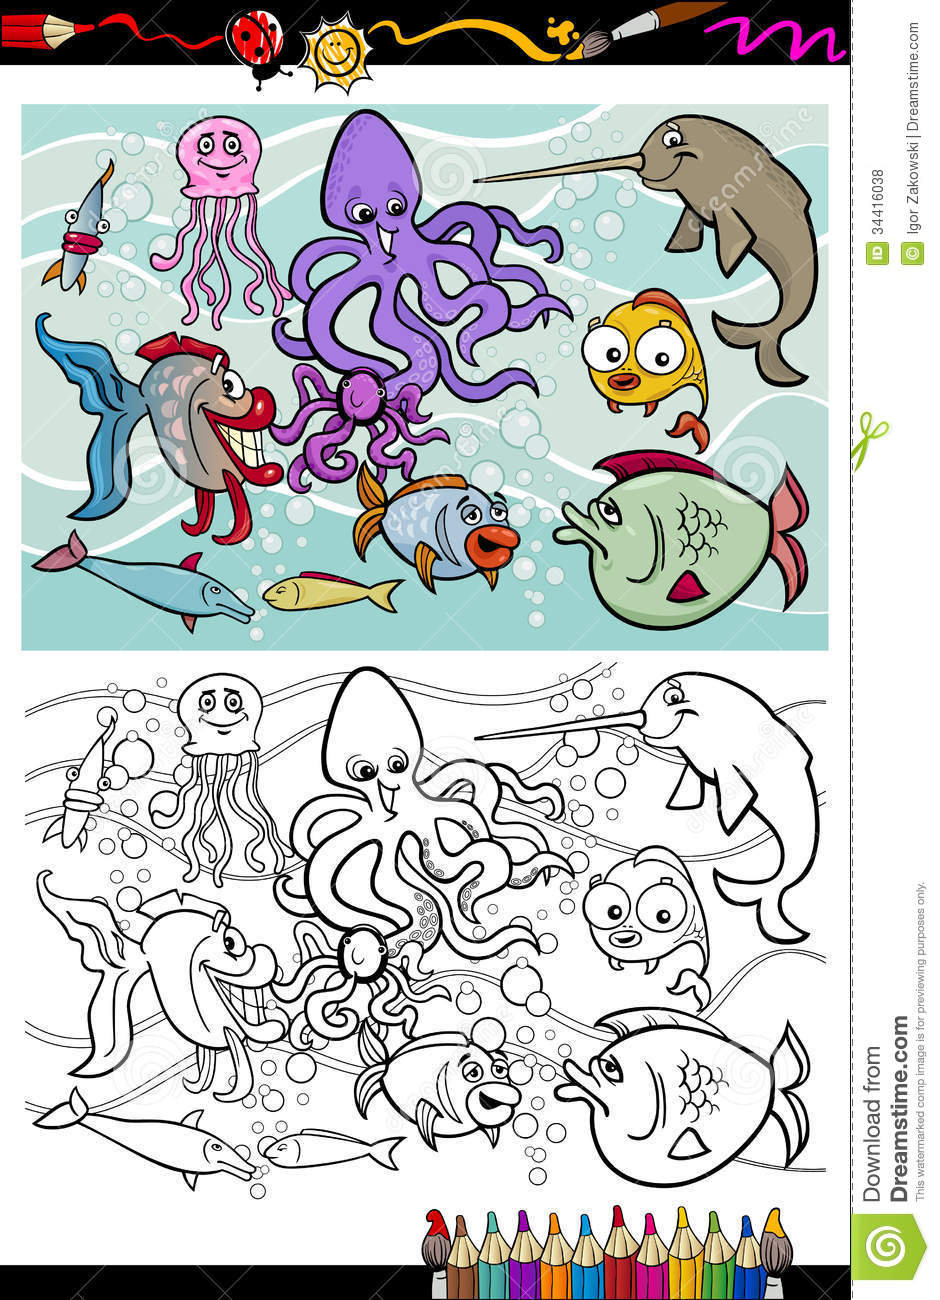 sea life animals group coloring book royalty free stock photos image 34416038. Black Bedroom Furniture Sets. Home Design Ideas